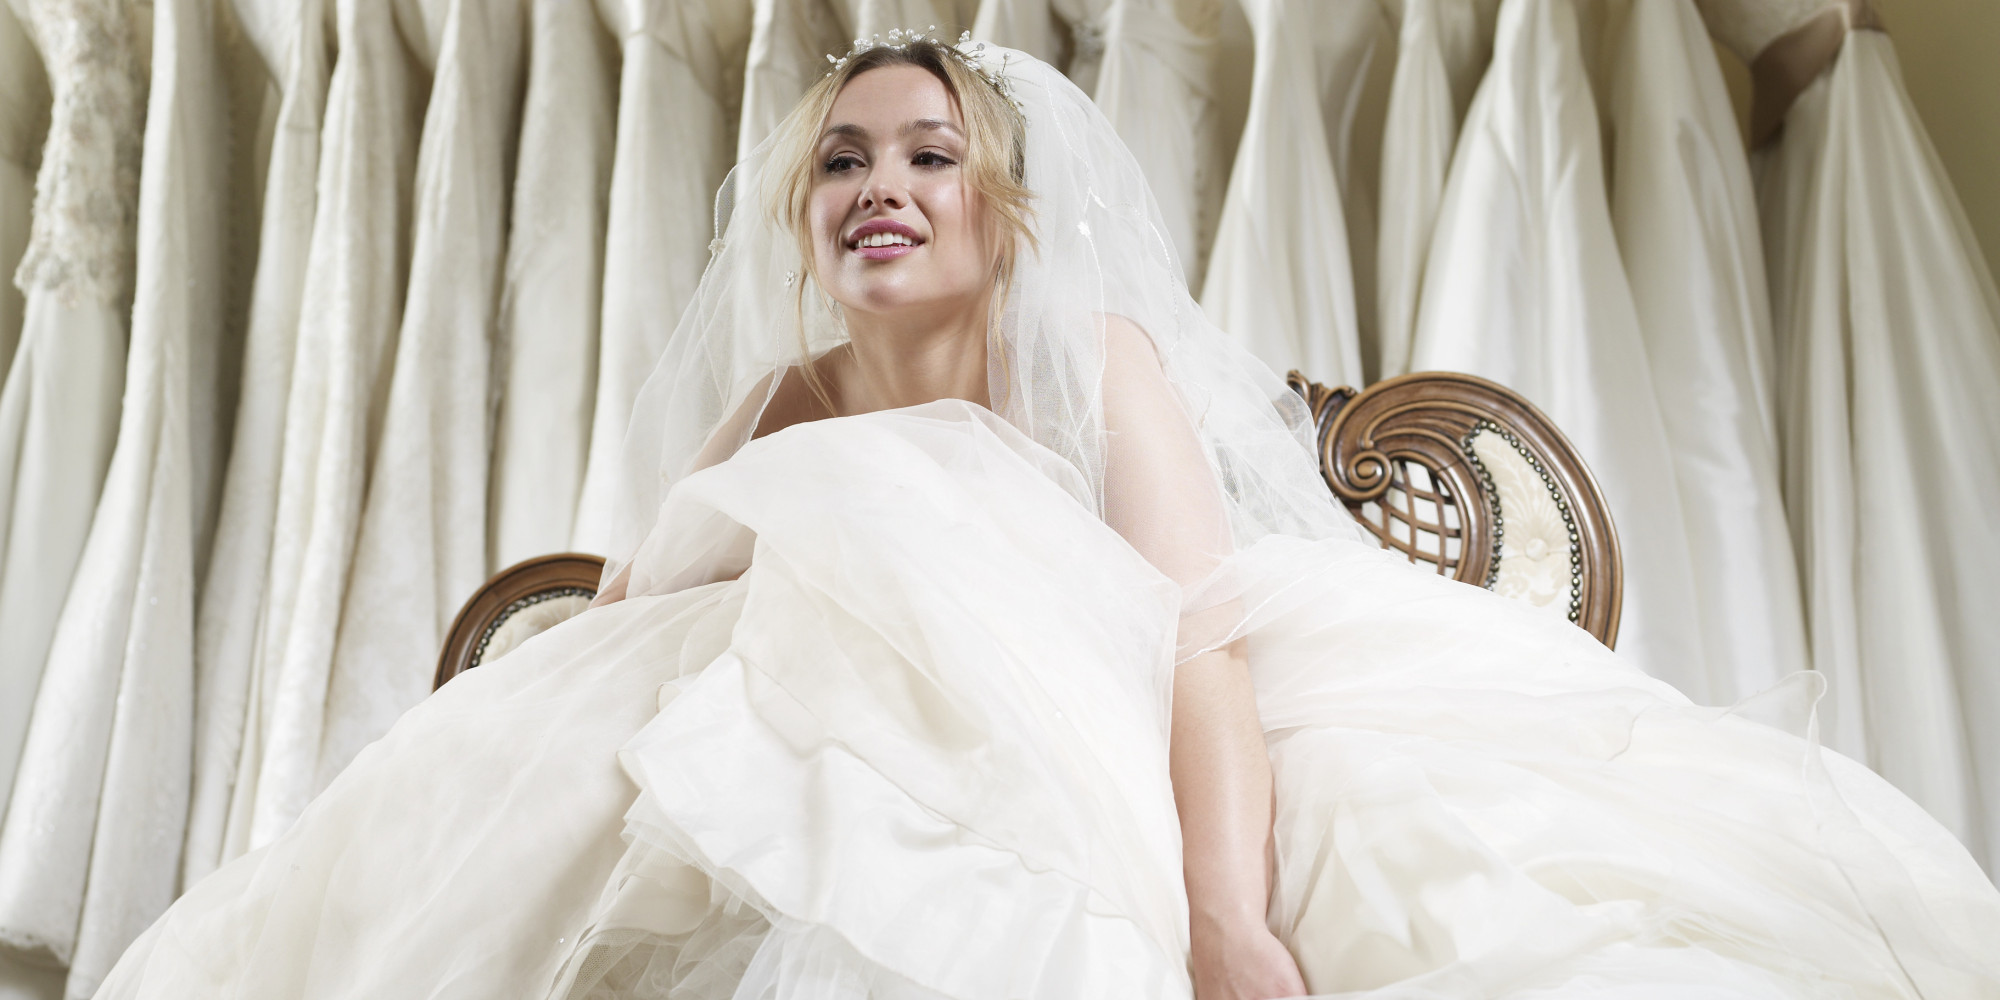 Plus Size Wedding Dresses Toronto : Plus size wedding dresses that don t skimp on style photos